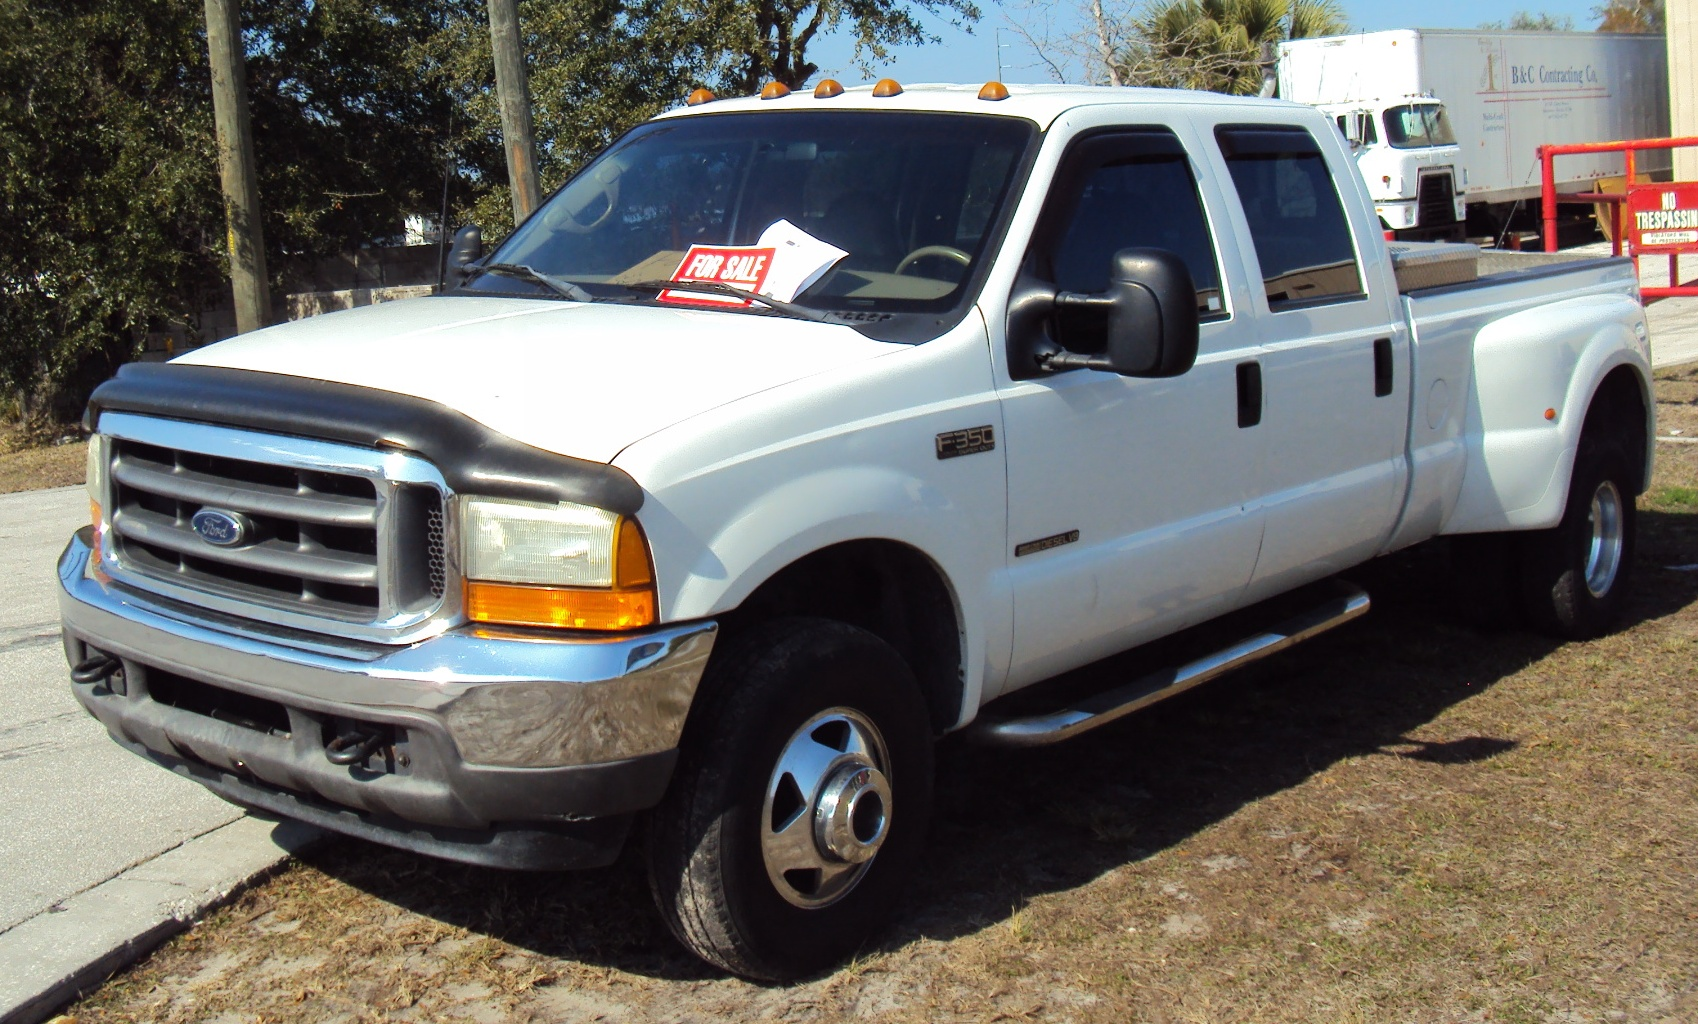 2001 ford f 350 super duty size 660 kb resolution 1698x1024 type link file src